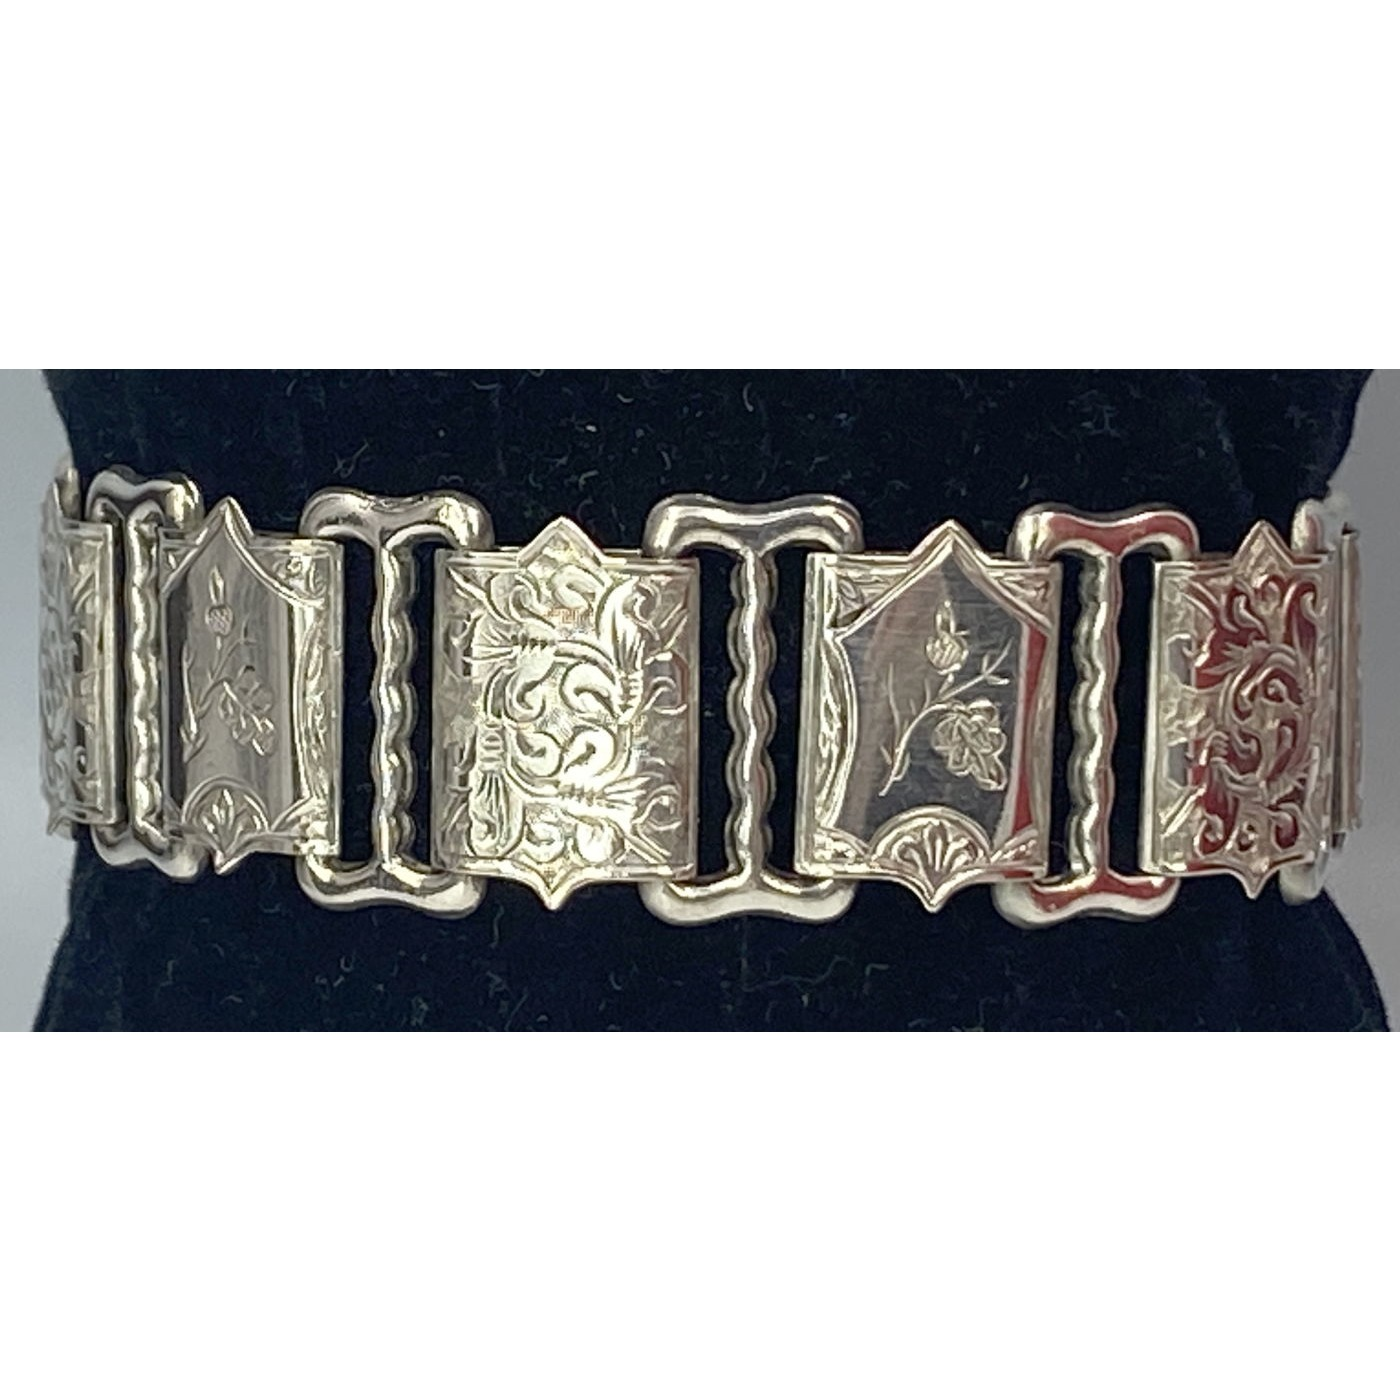 Fabulous Floral and Swirls Embossed Link Antique English Bracelet